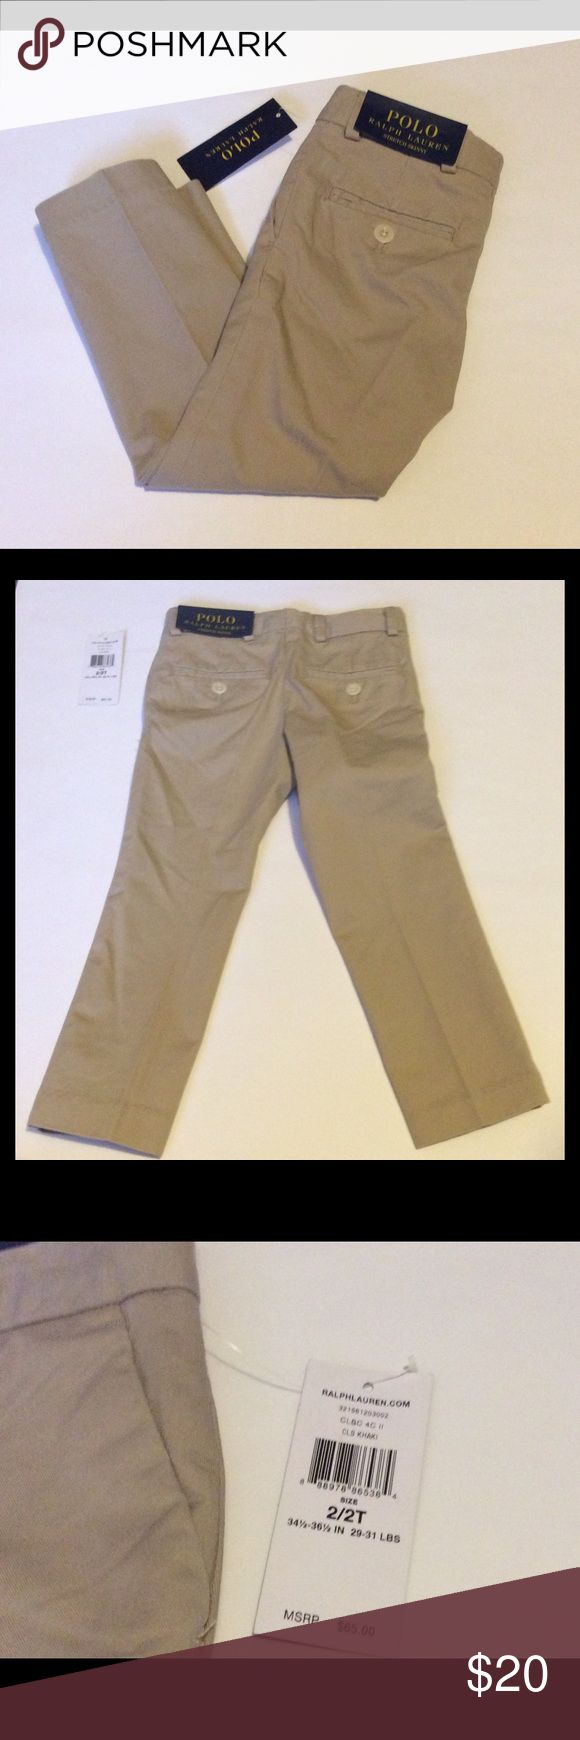 Polo Ralph Lauren Stretch Skinny Khaki Pants NWT Polo Ralph Lauren Khaki Pants. Stretch Skinny. 1 button/zipper closure. 2 front pockets/ 2 back pockets. Available in 2T or 3T,.. Size 2 Toddler was used in pictures. Polo by Ralph Lauren Bottoms